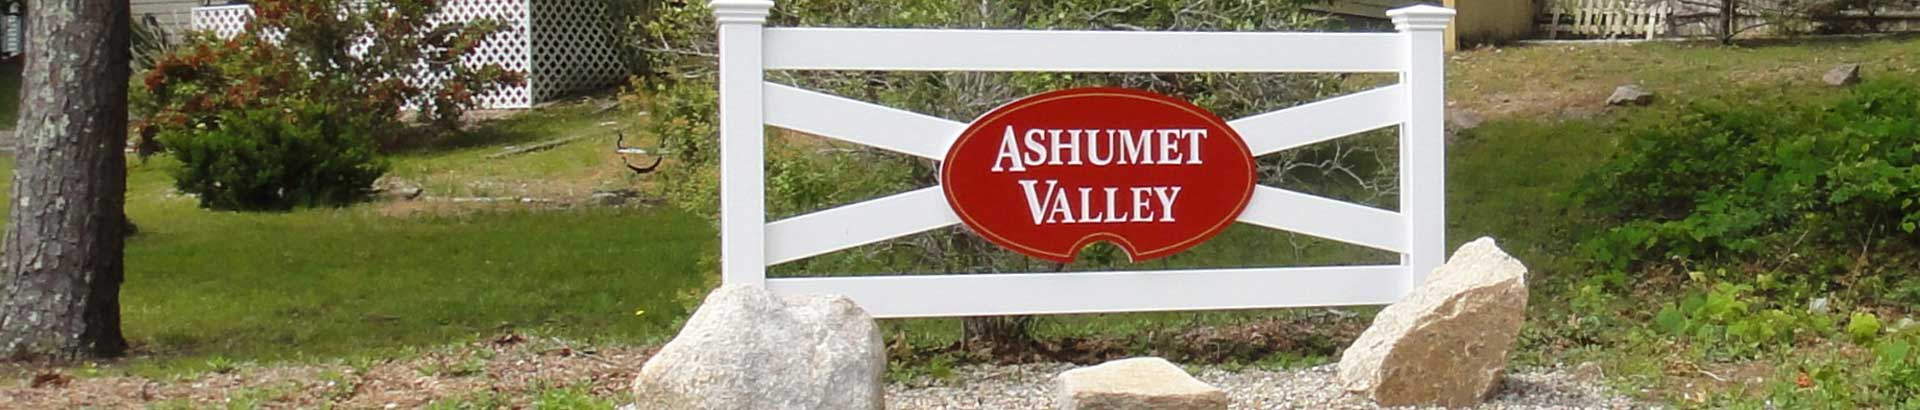 Ashumet Valley Entrance Sign